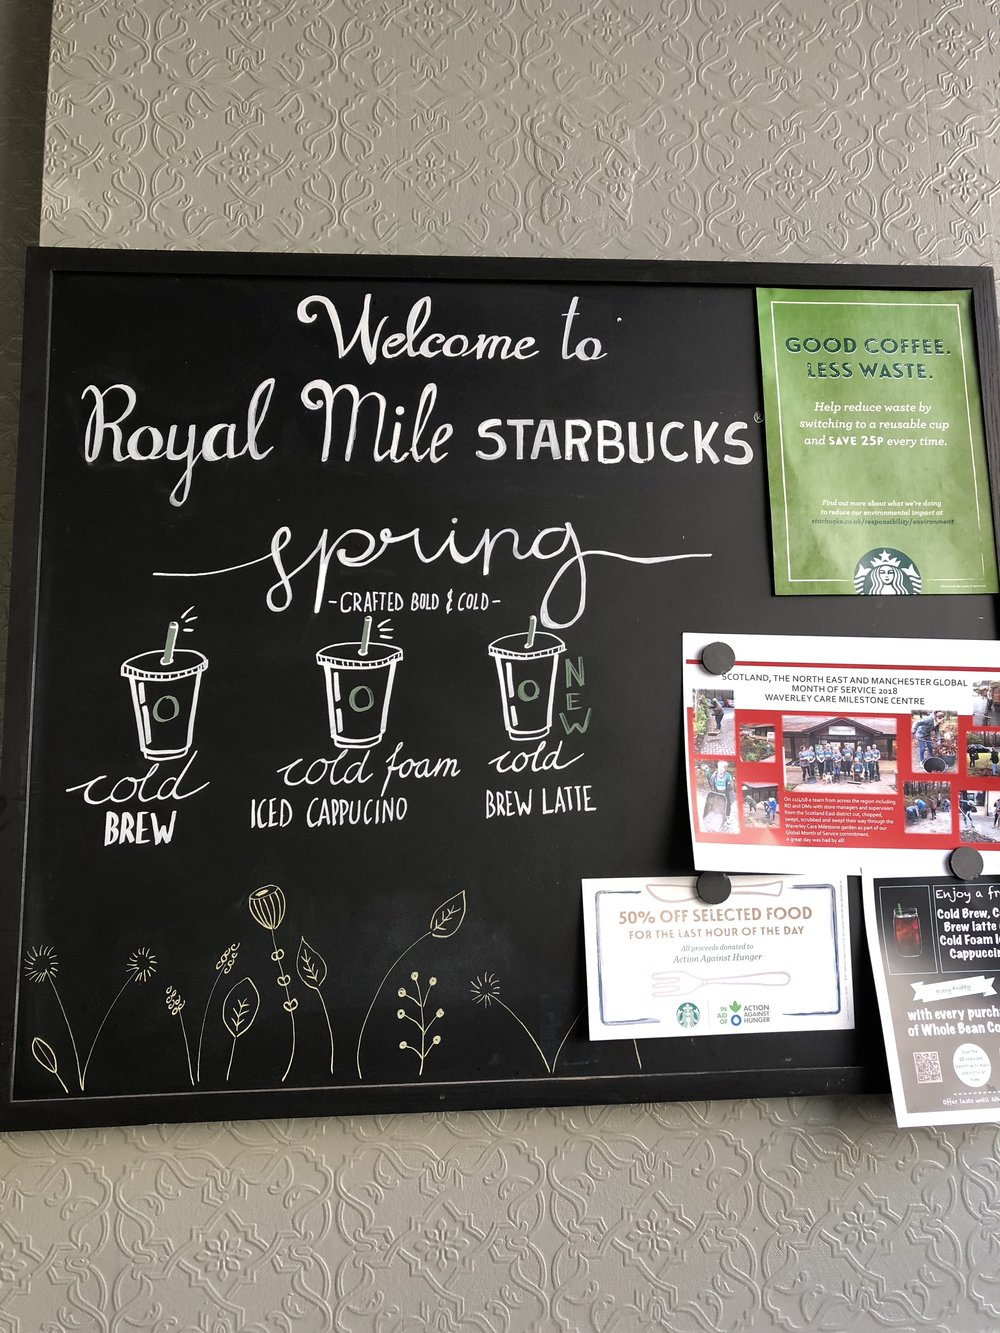 starbucks - royal mile.jpg